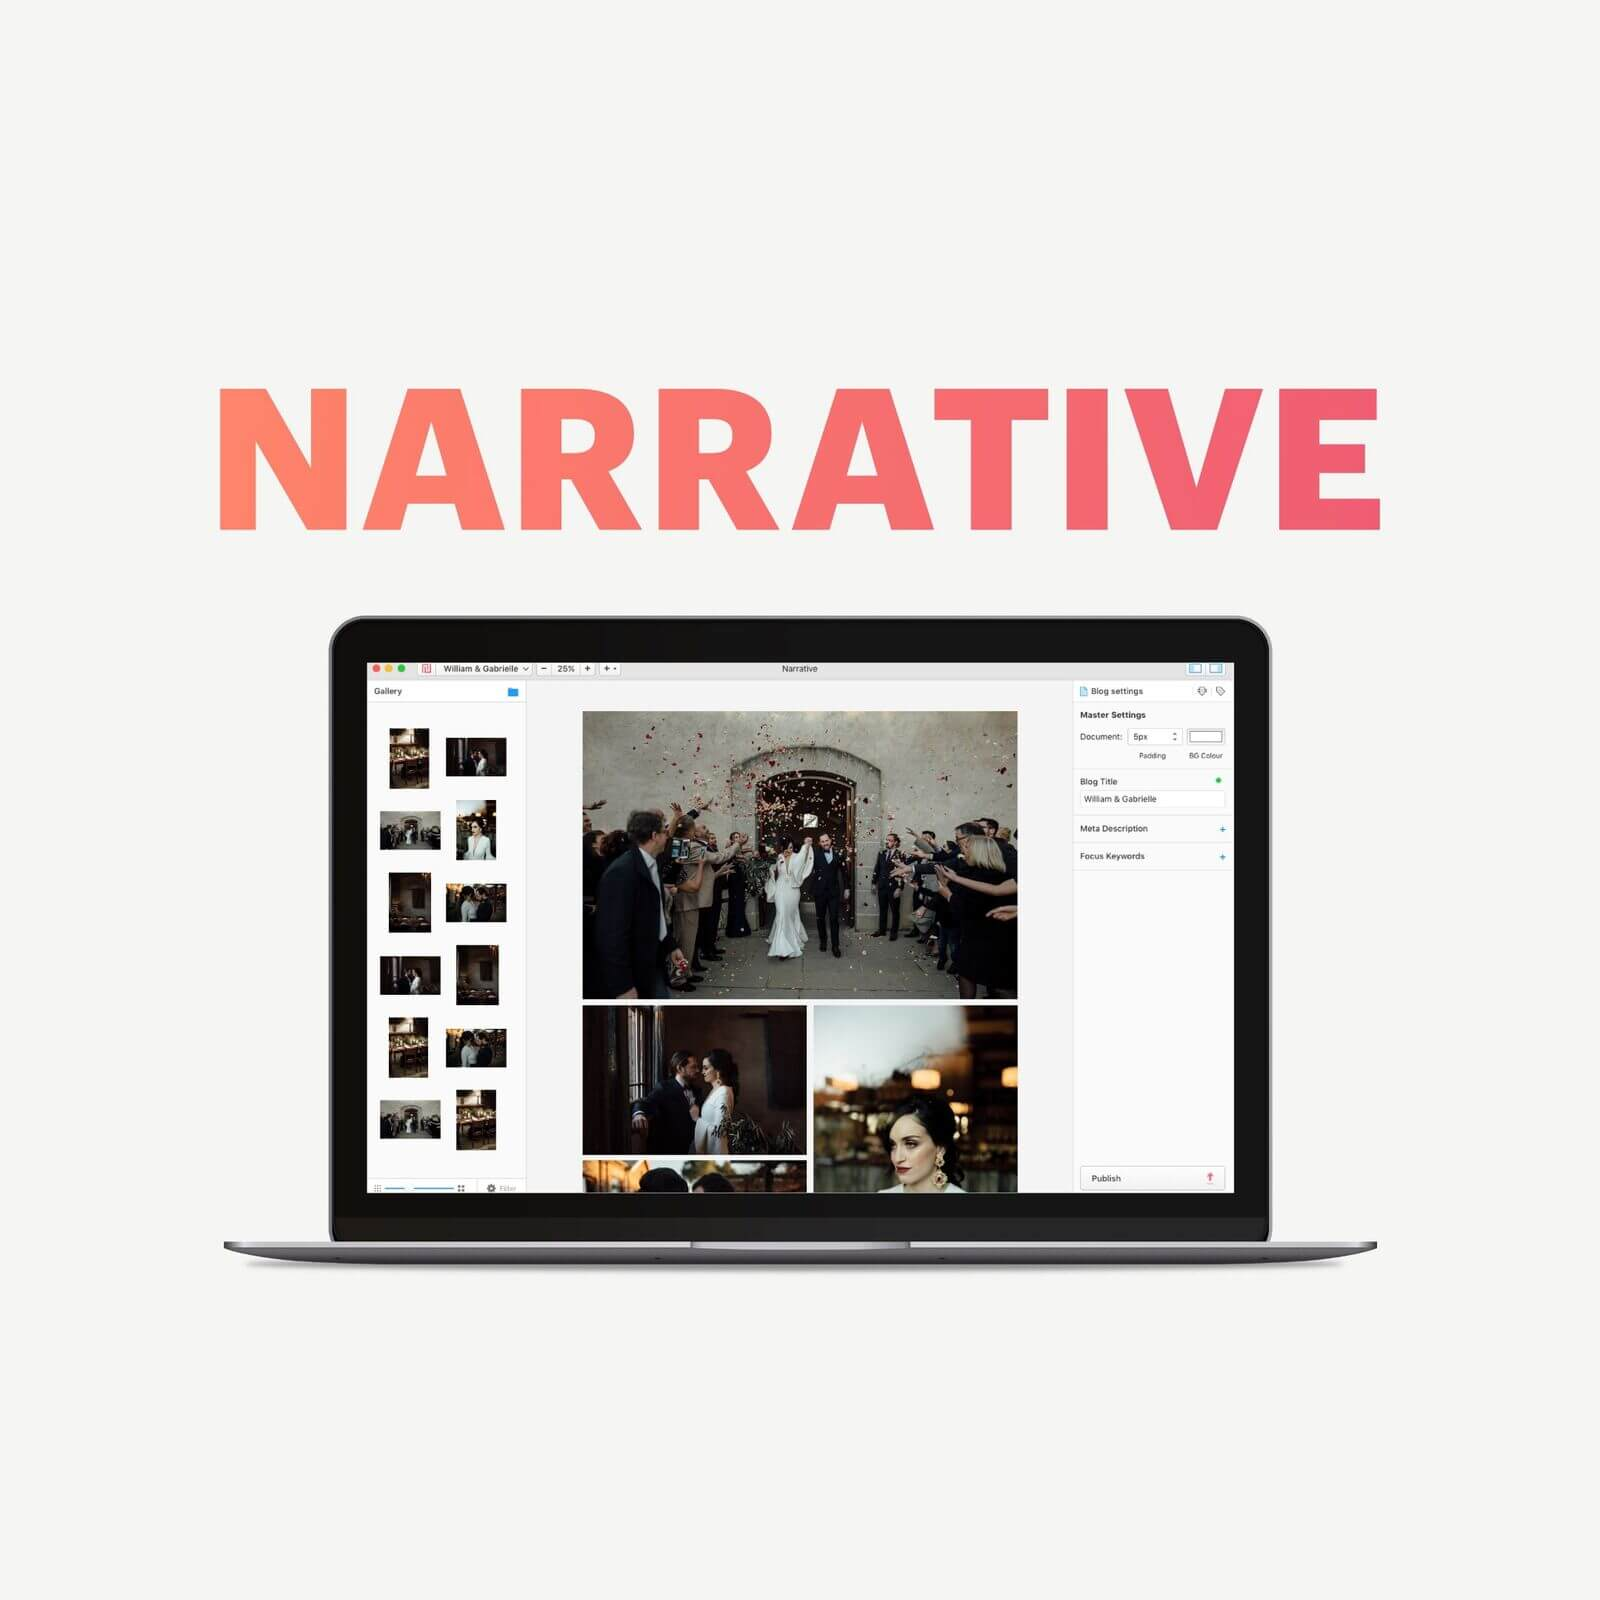 Best tool to create Image Blog Posts -Narrative, Flothemes Review